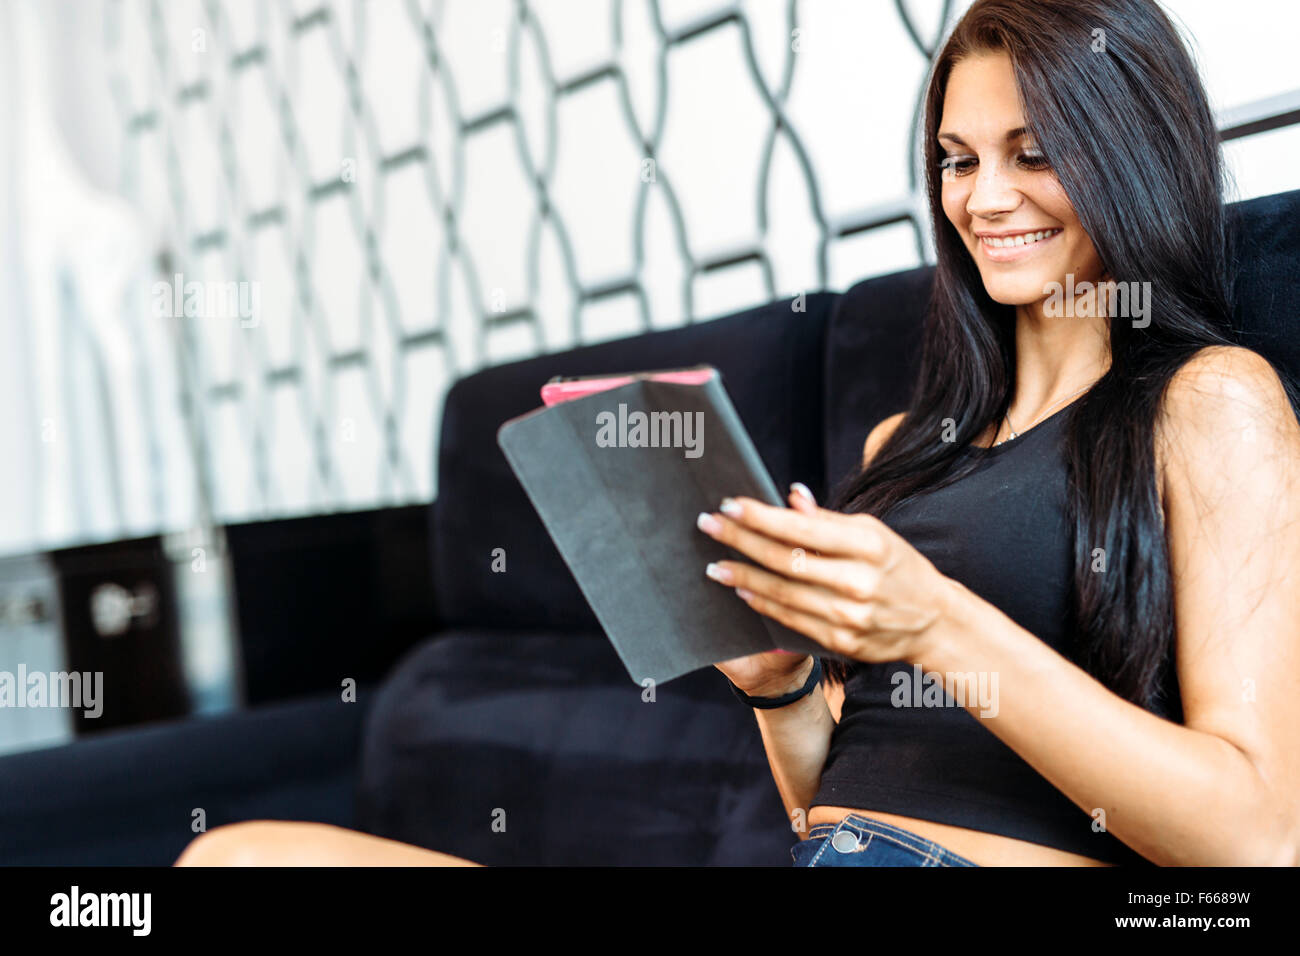 Beautiful happy young woman using a tablet Photo Stock